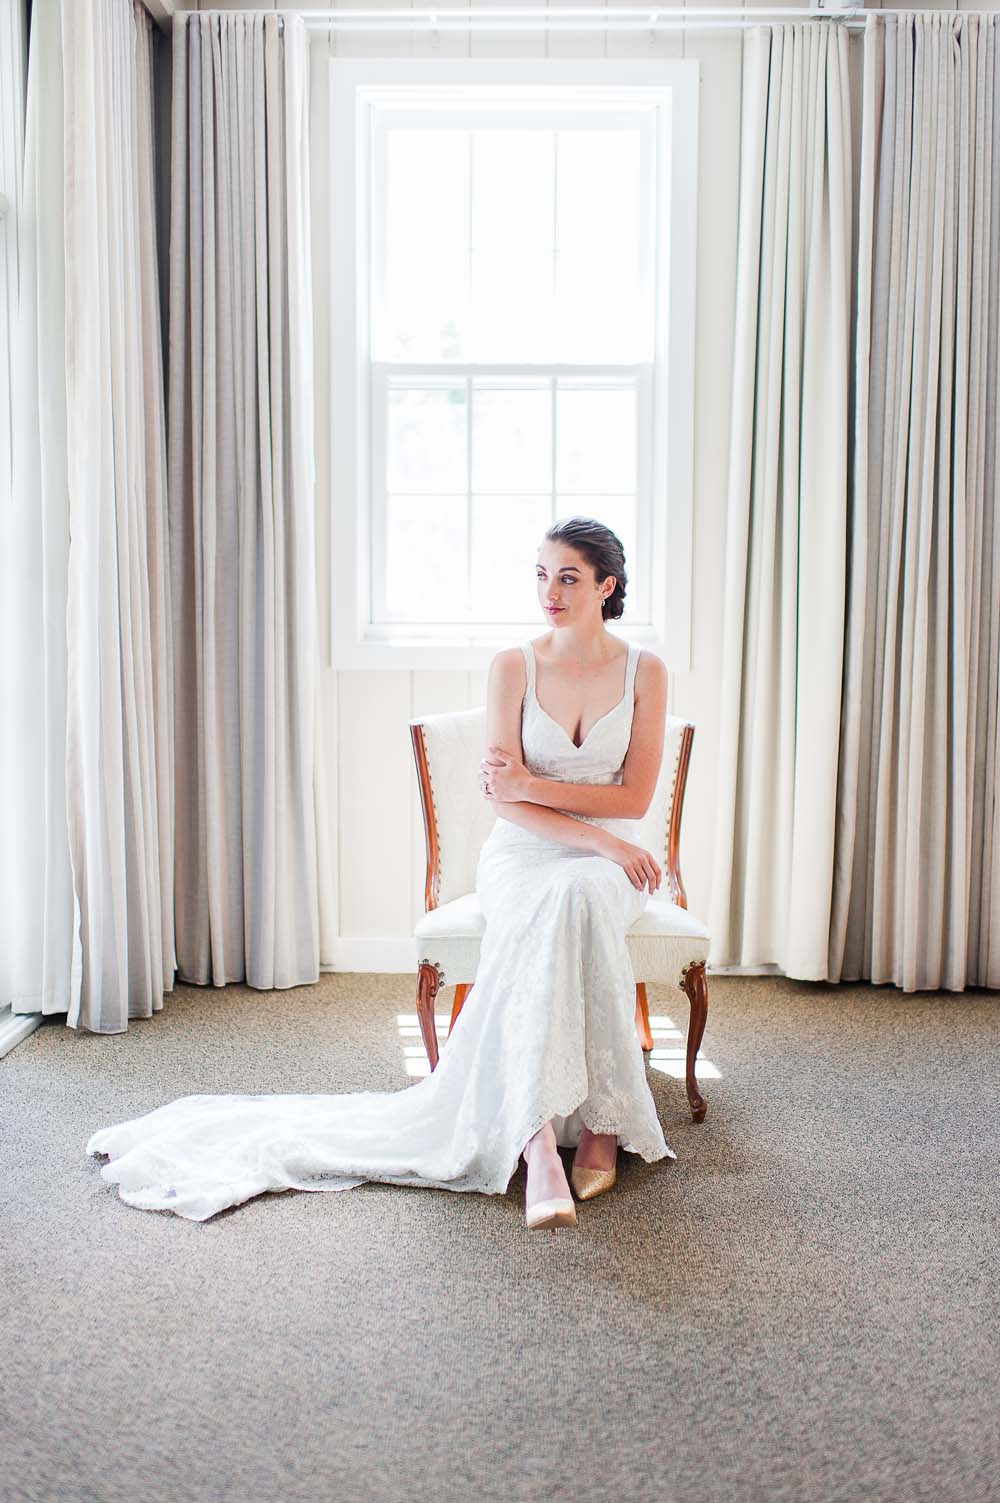 An Ultra Violet-Inspired Styled Shoot In Quebec - Bride getting ready